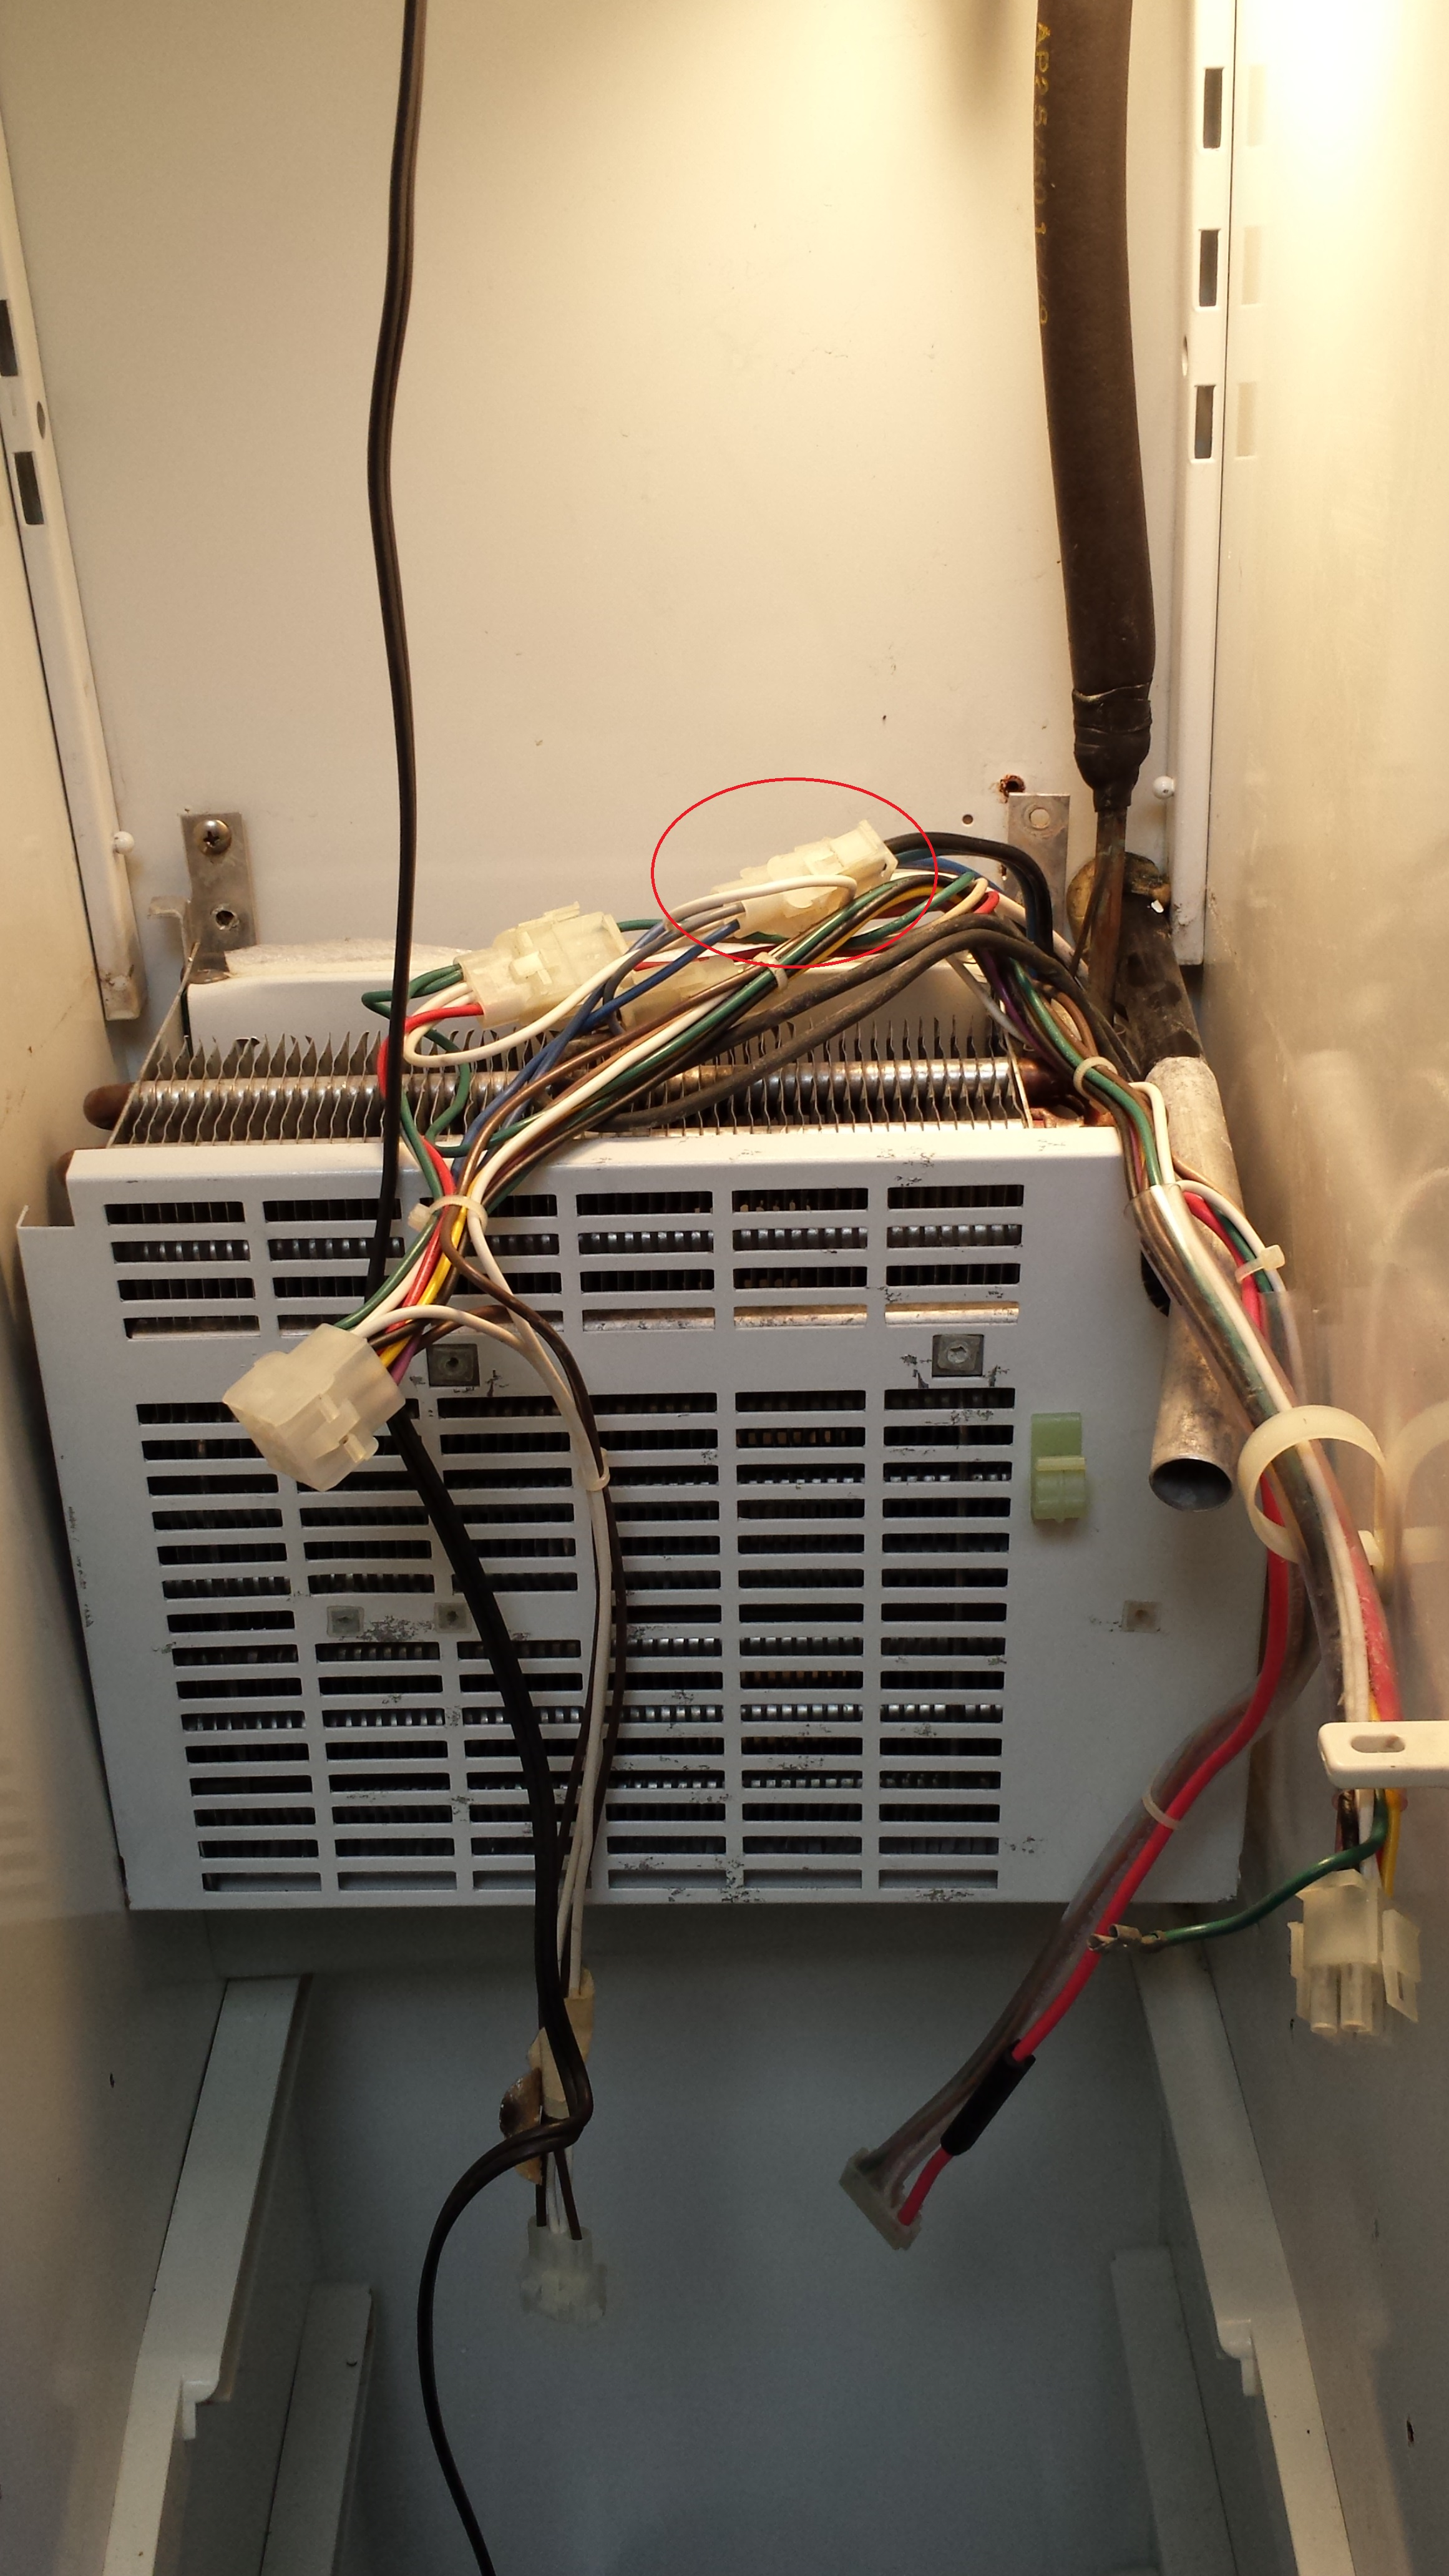 Sub Zero Refrigerator Wiring Diagram Replacement Zer Room Subzero Due To 561 Trouble In Of